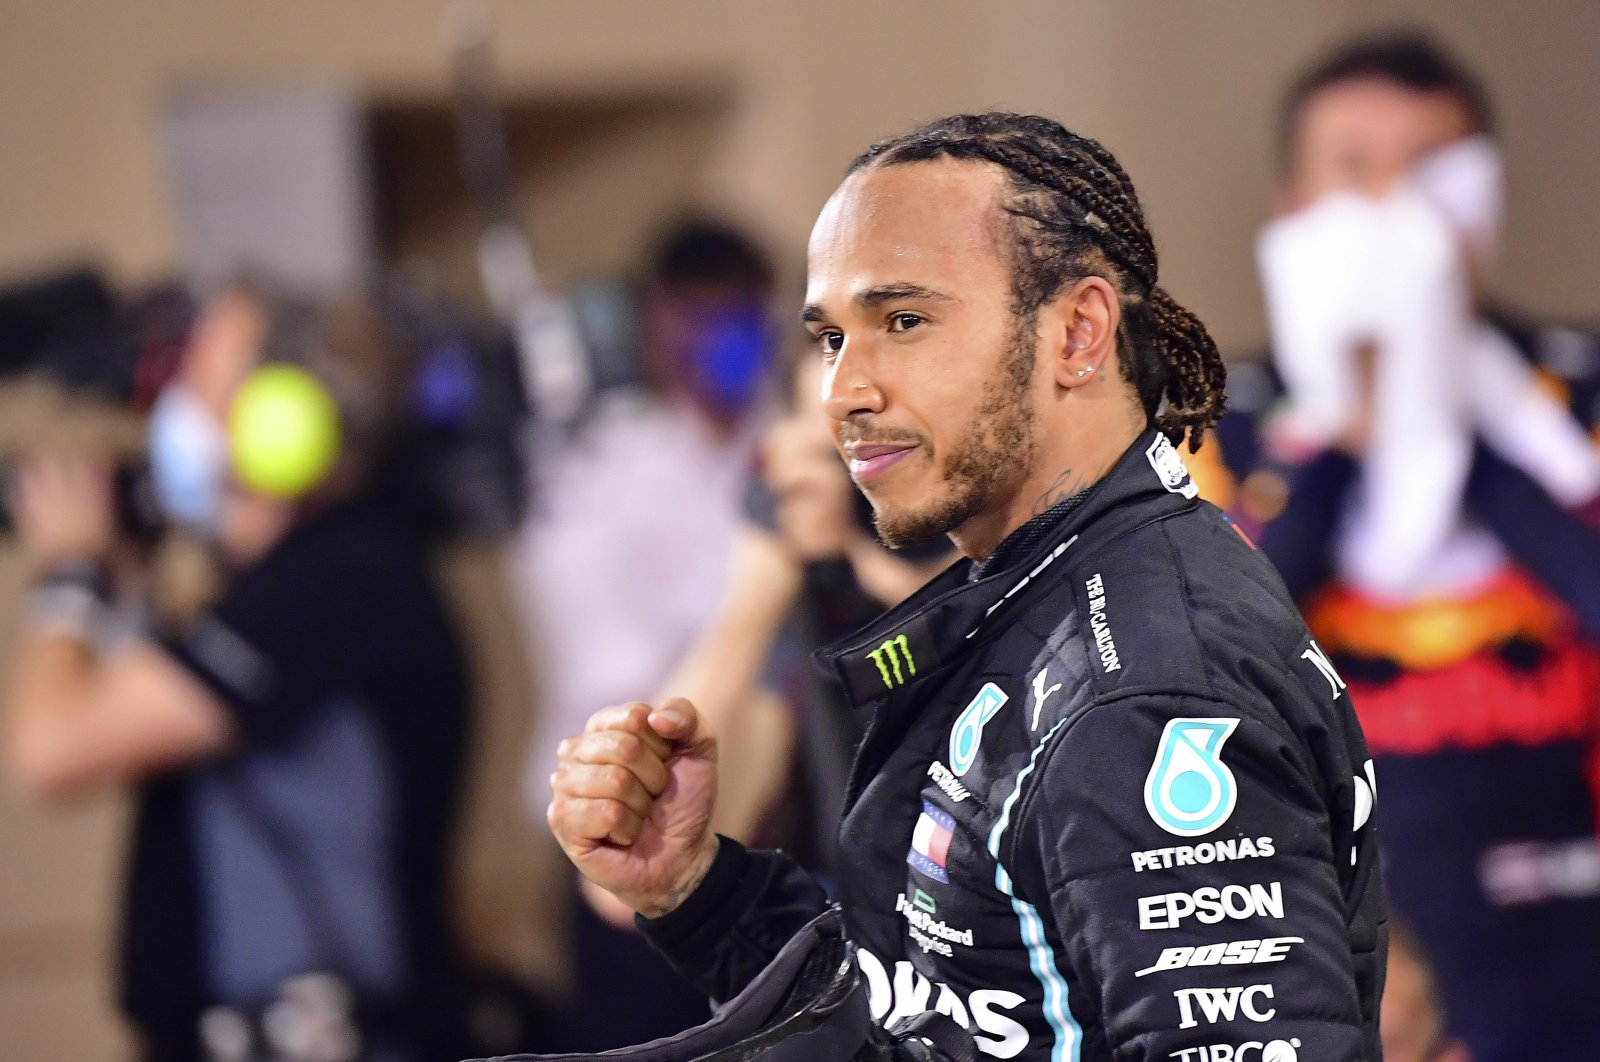 Mercedes driver Lewis Hamilton celebrates winning the Formula One race in Bahrain International Circuit in Sakhir, Bahrain, Nov. 29, 2020. (AP Photo)